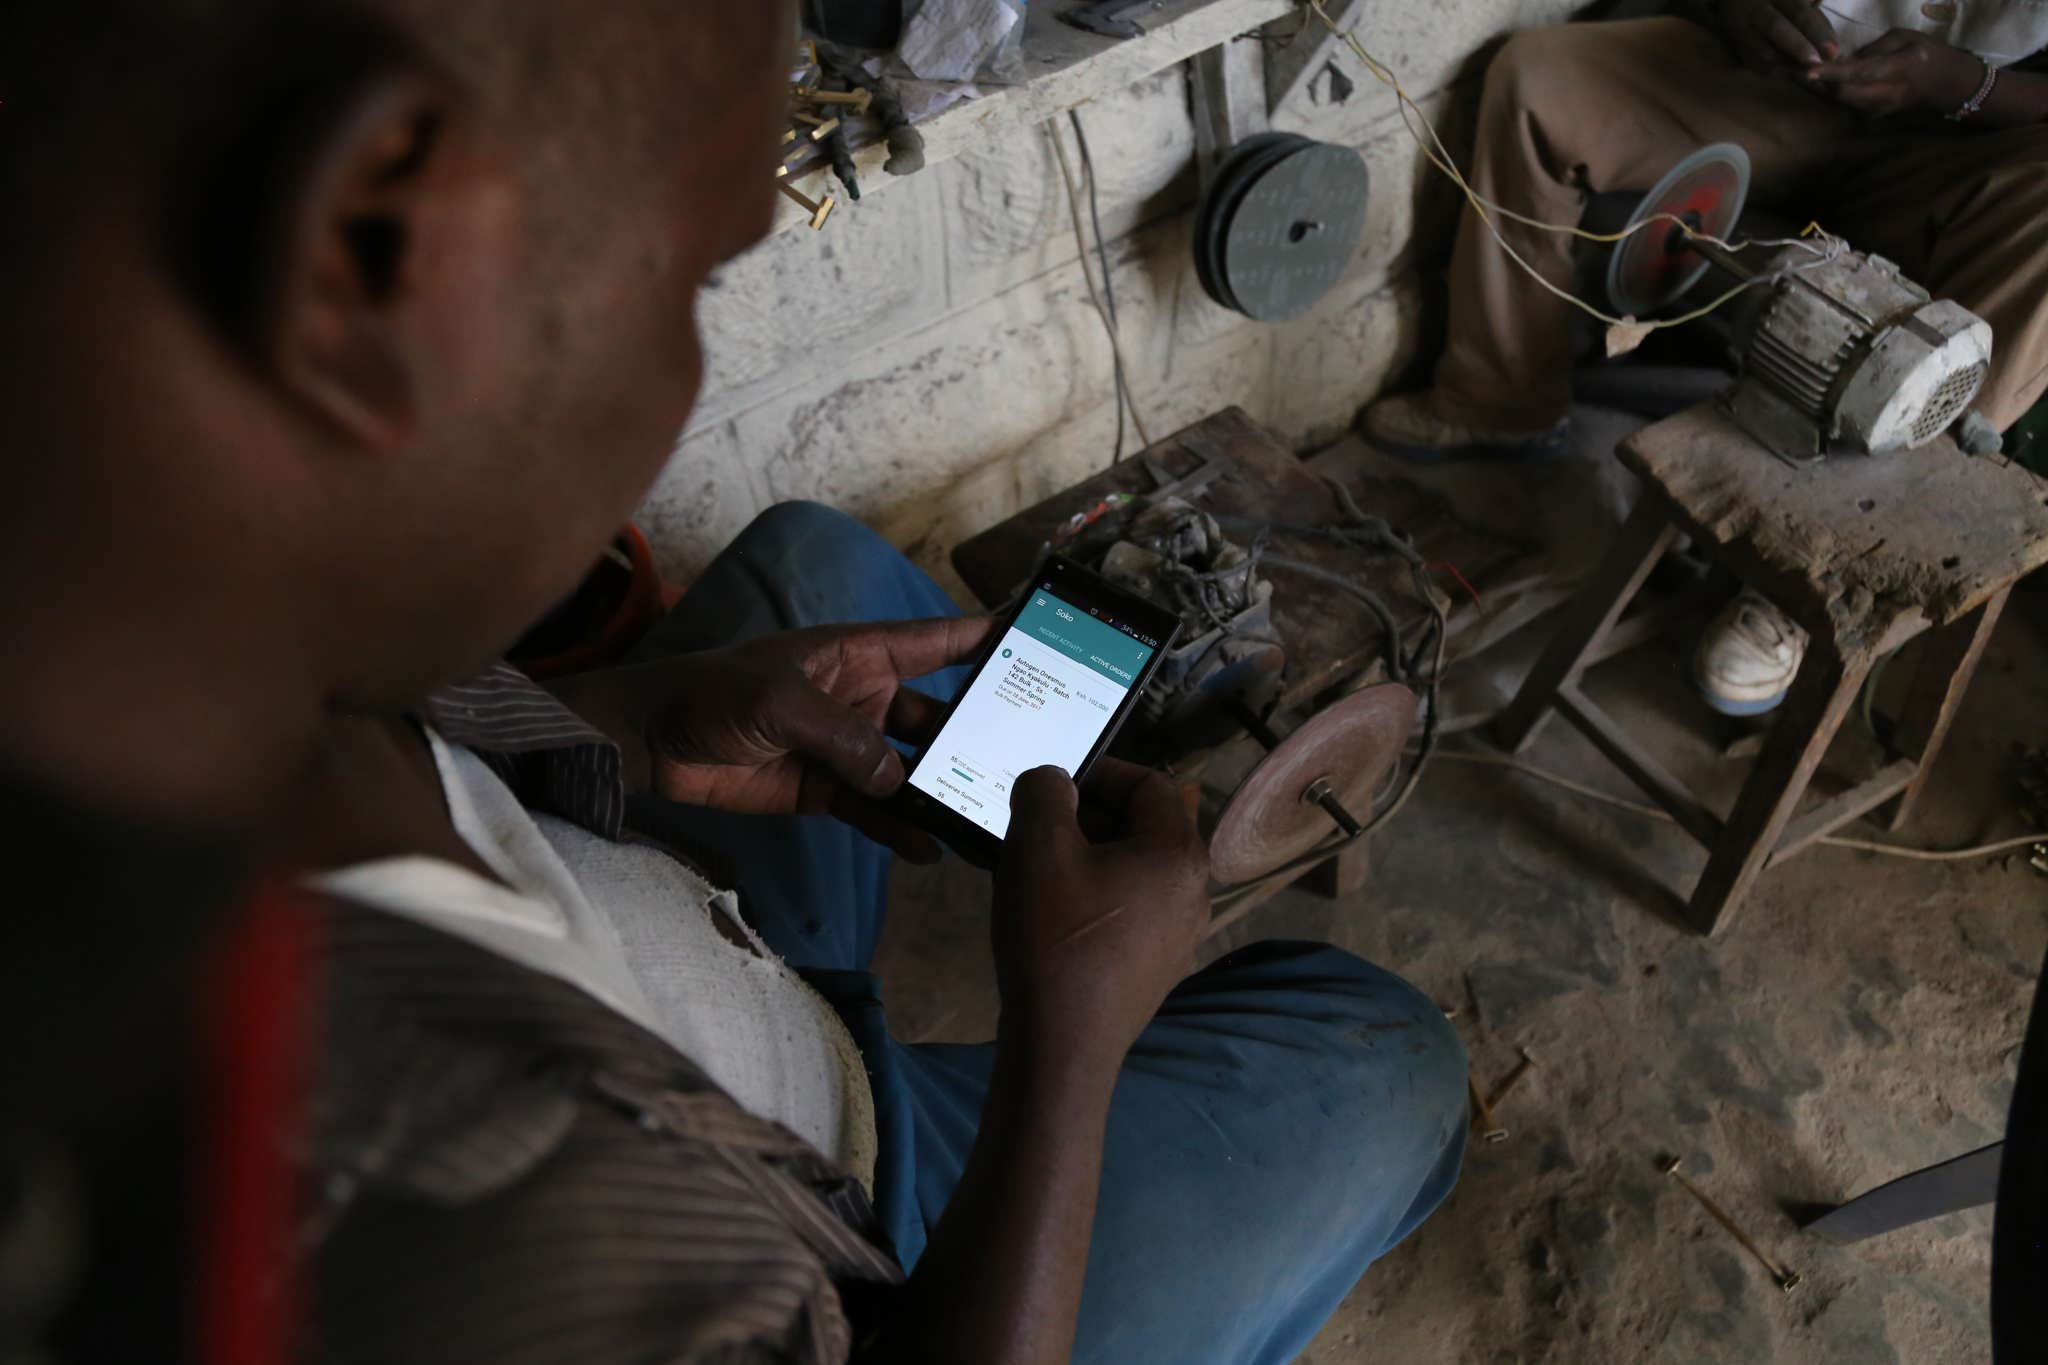 One of SOKO's artisan partners, Onesmus Ngao, reviews his work order on our proprietary mobile app.